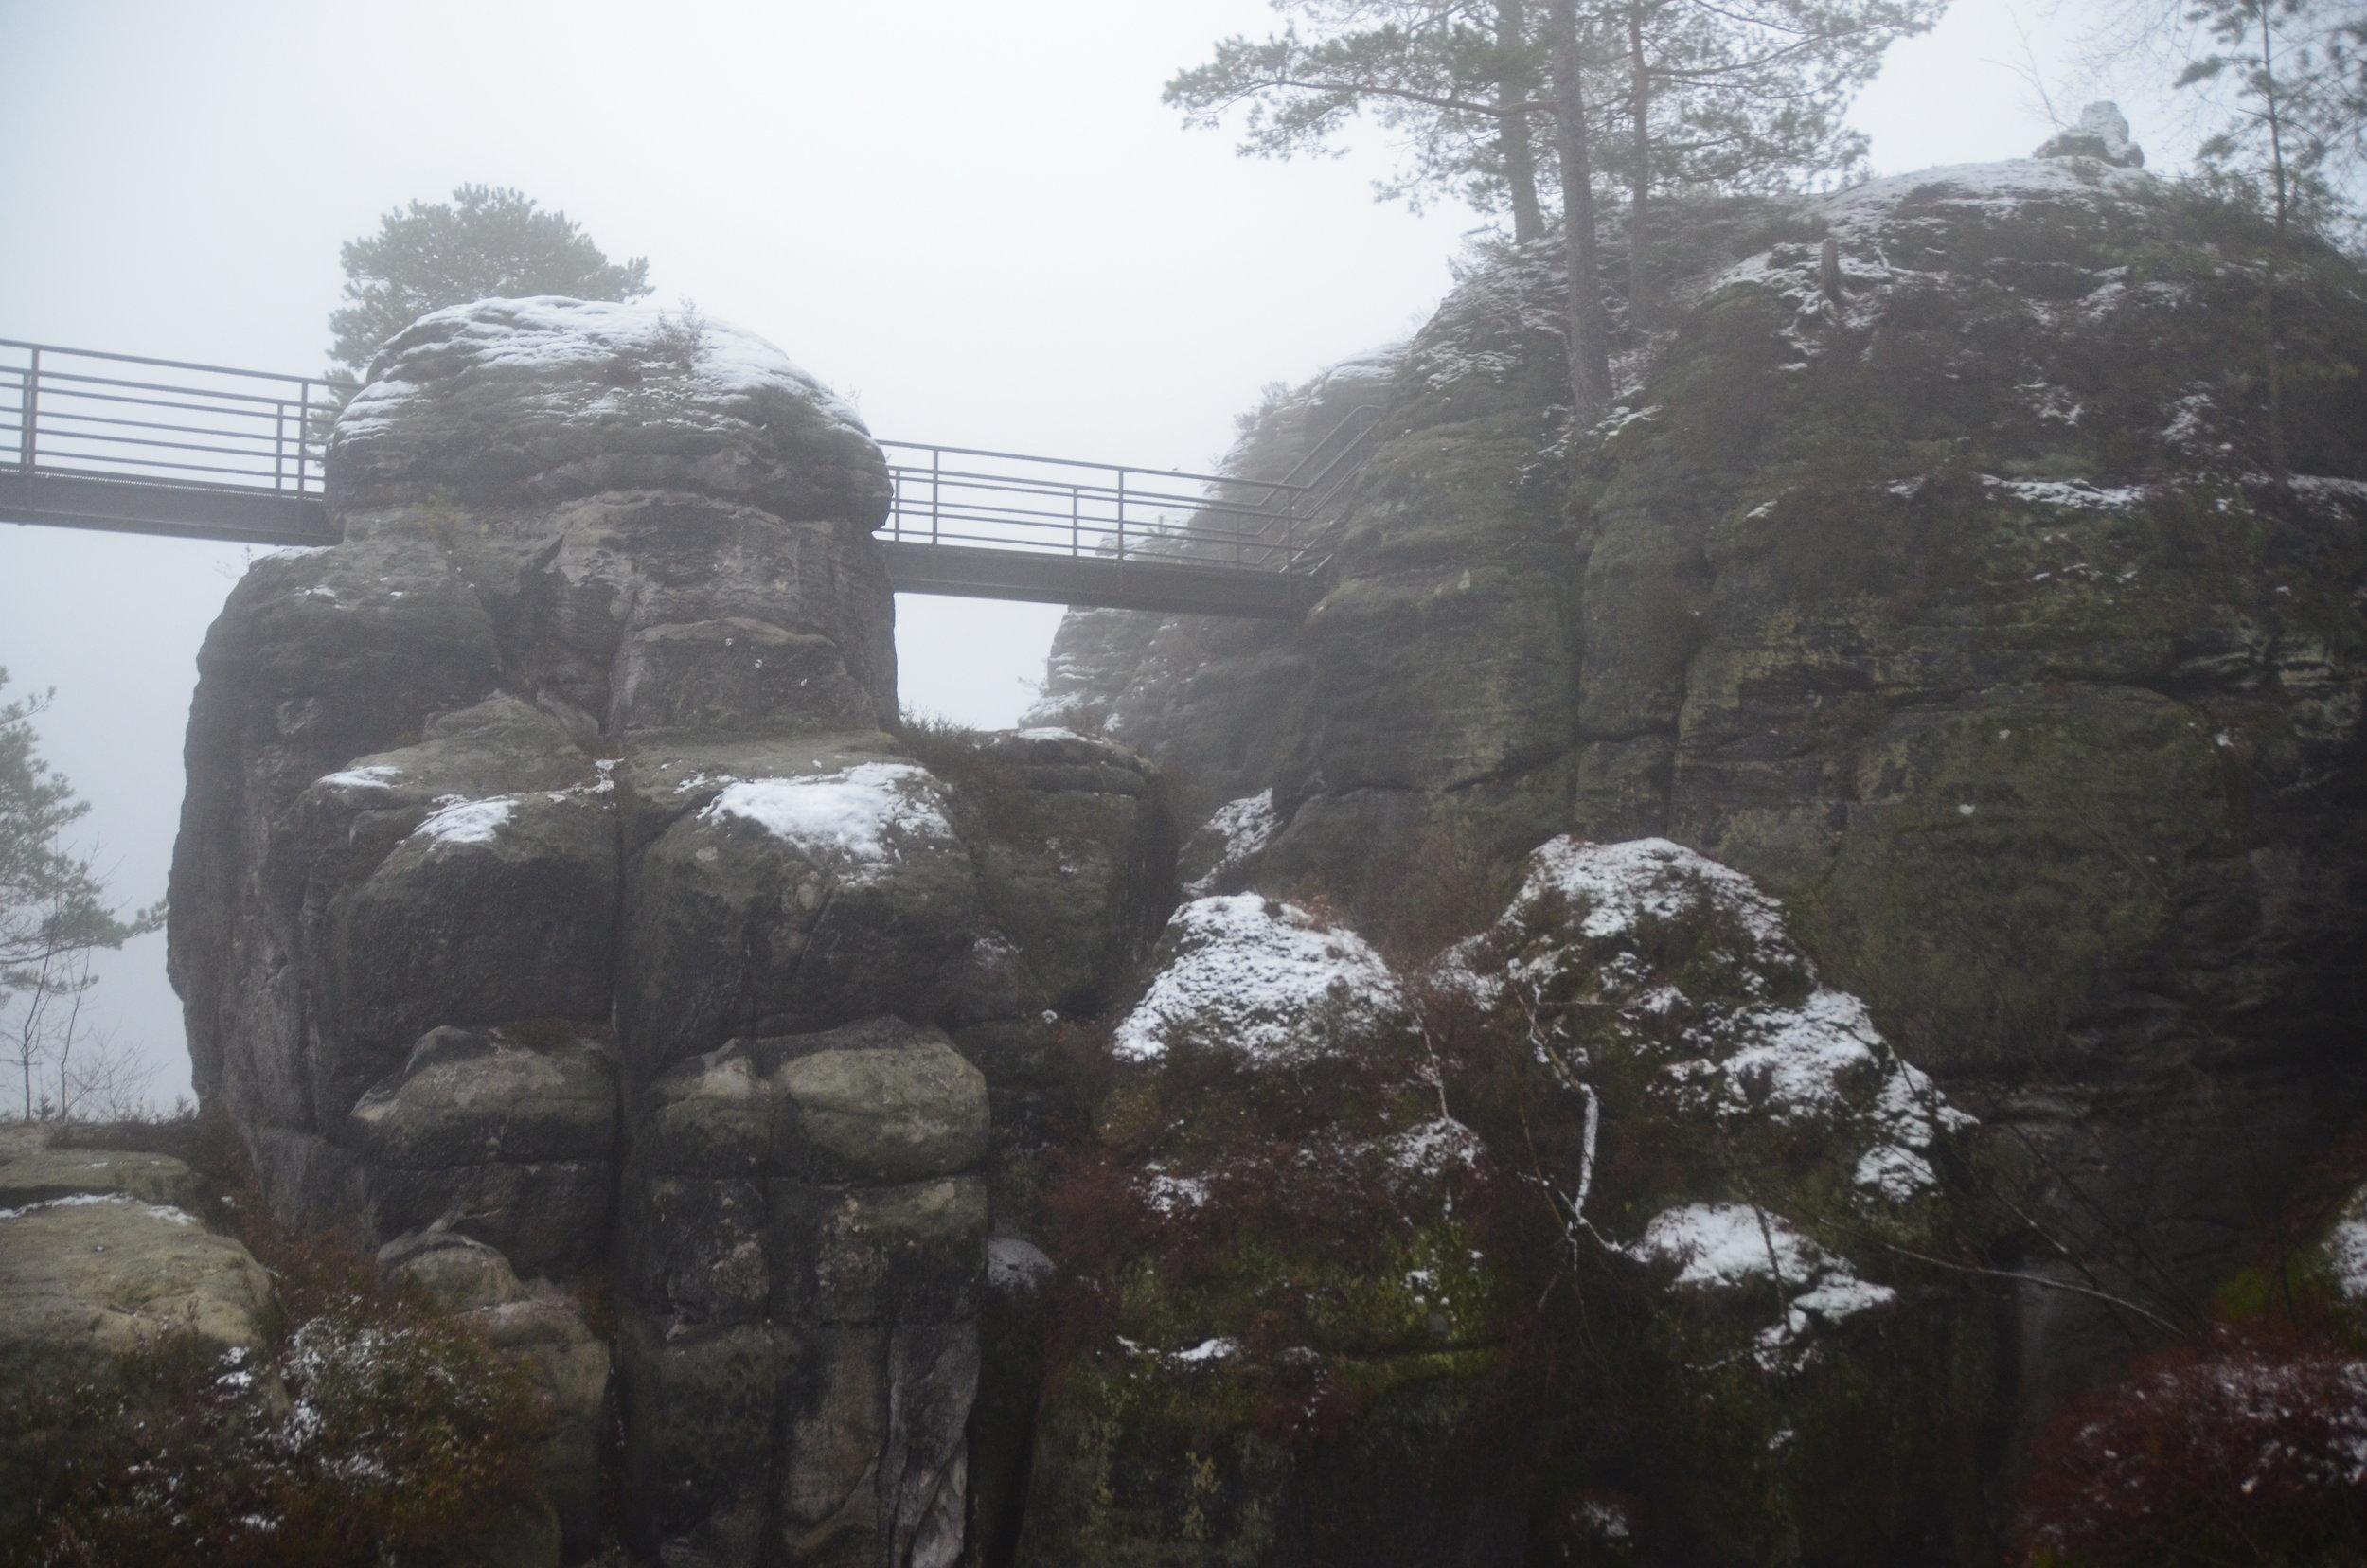 A network of metal bridges in the area of the park near the Bastei Bridge, allow people to reach even the most inaccessible locations.